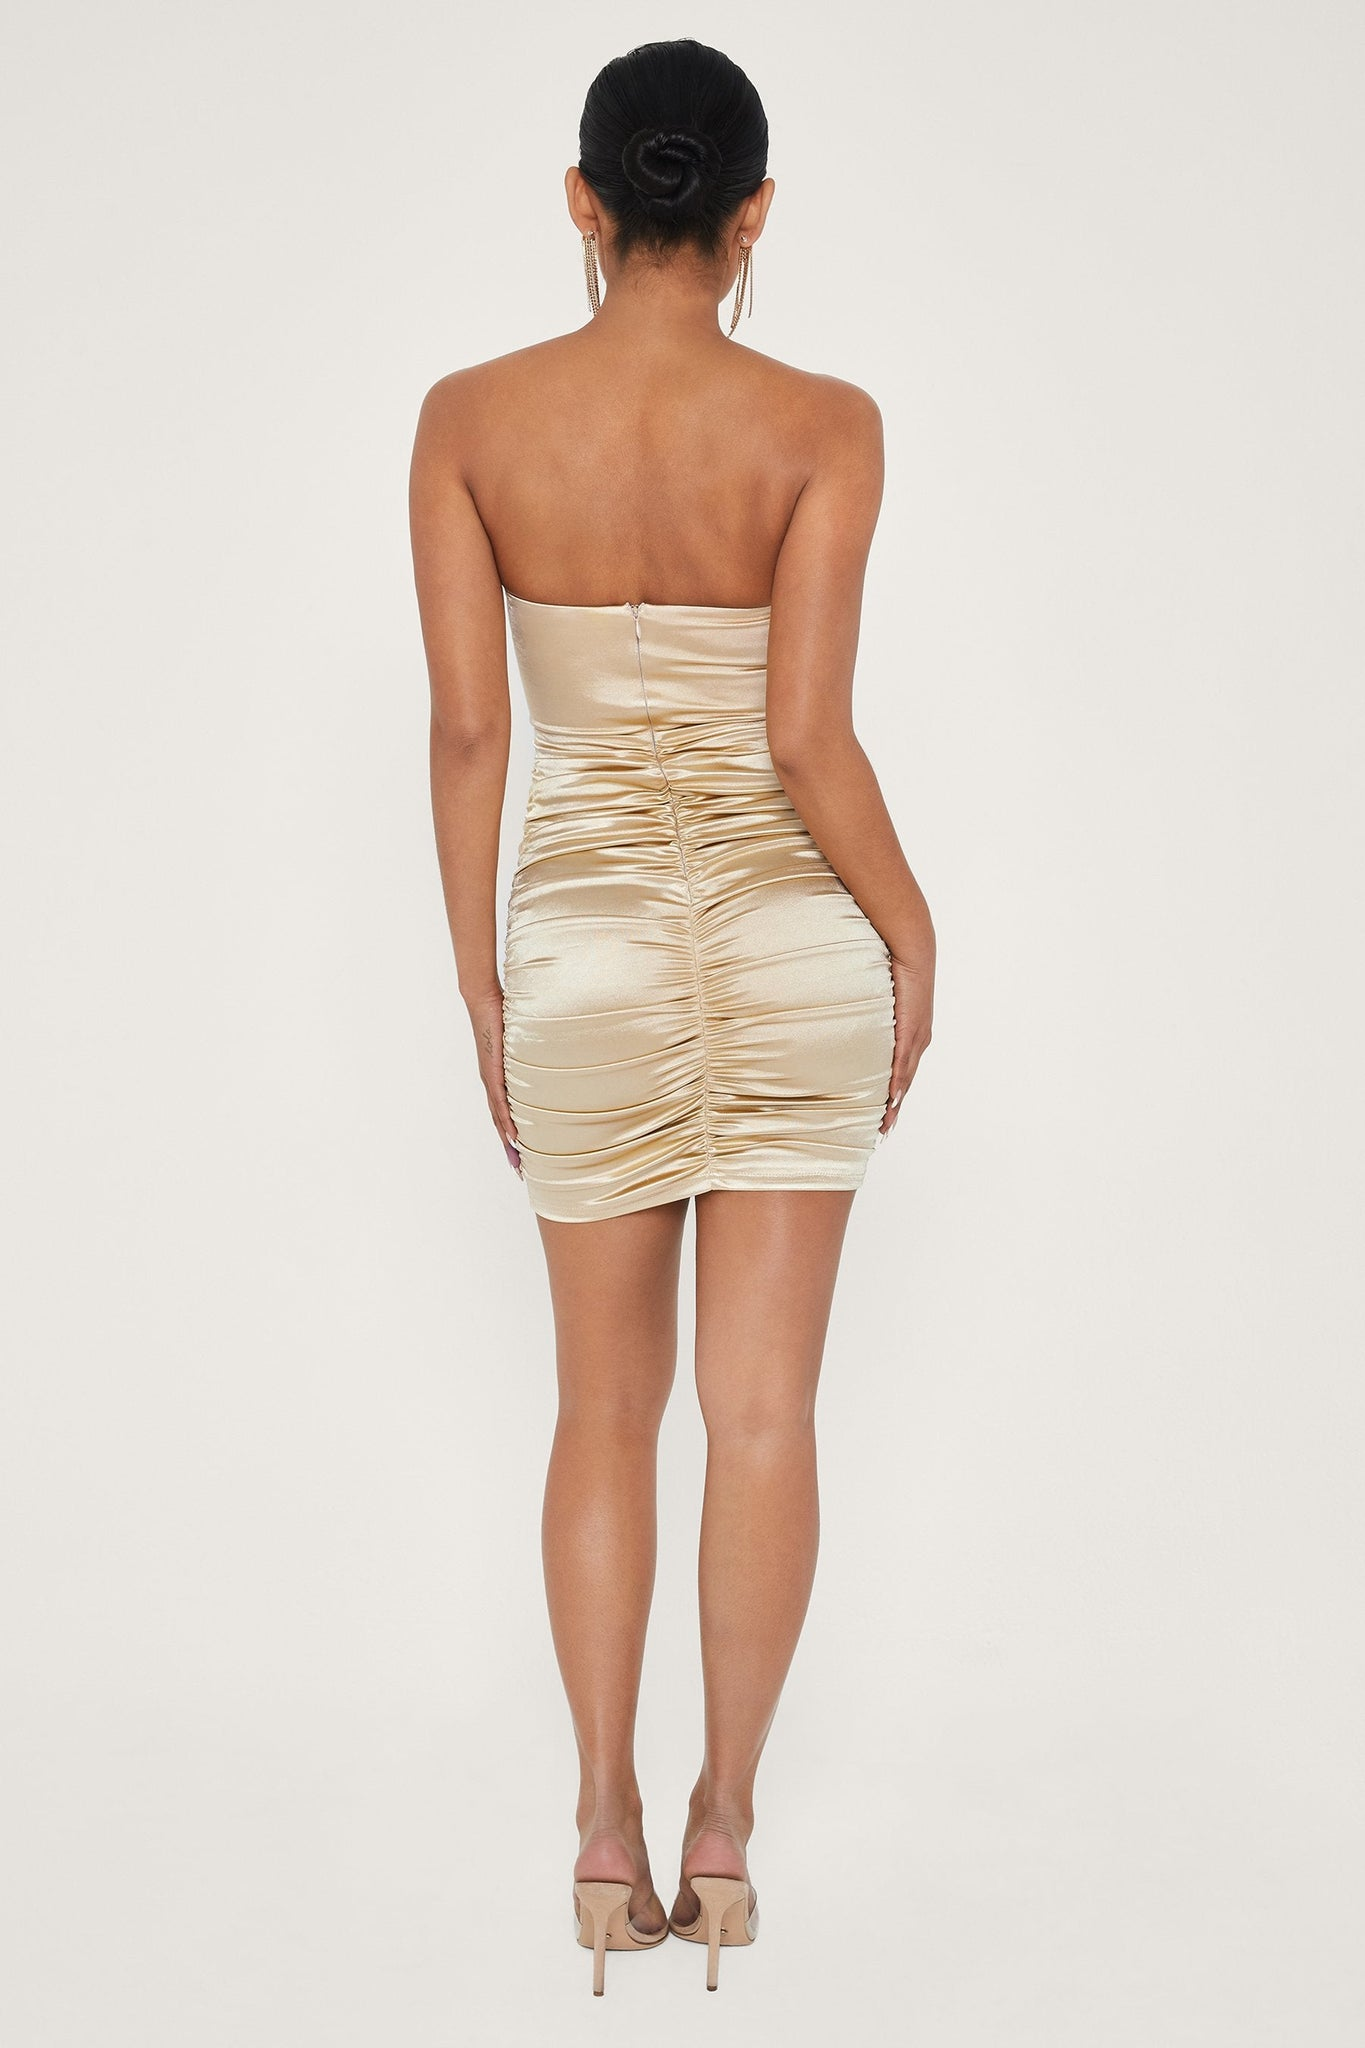 Bernadette Strapless Ruched Side Dress - Champagne - MESHKI